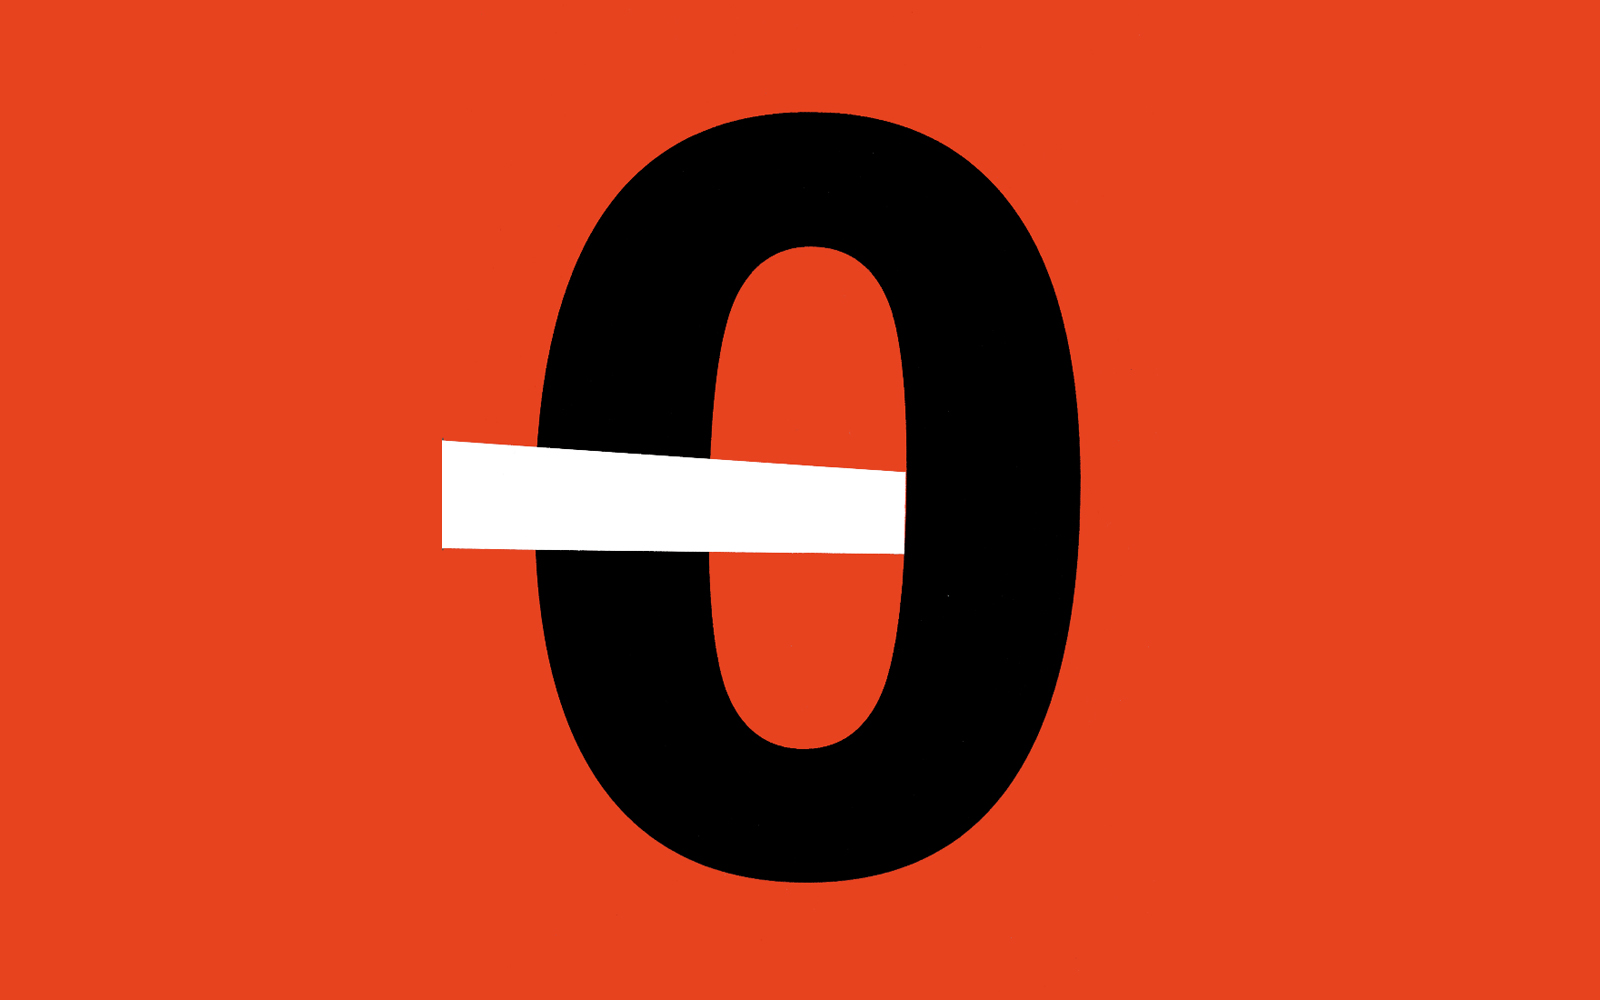 Zero Divided, cut paper collage, Mike Tedder